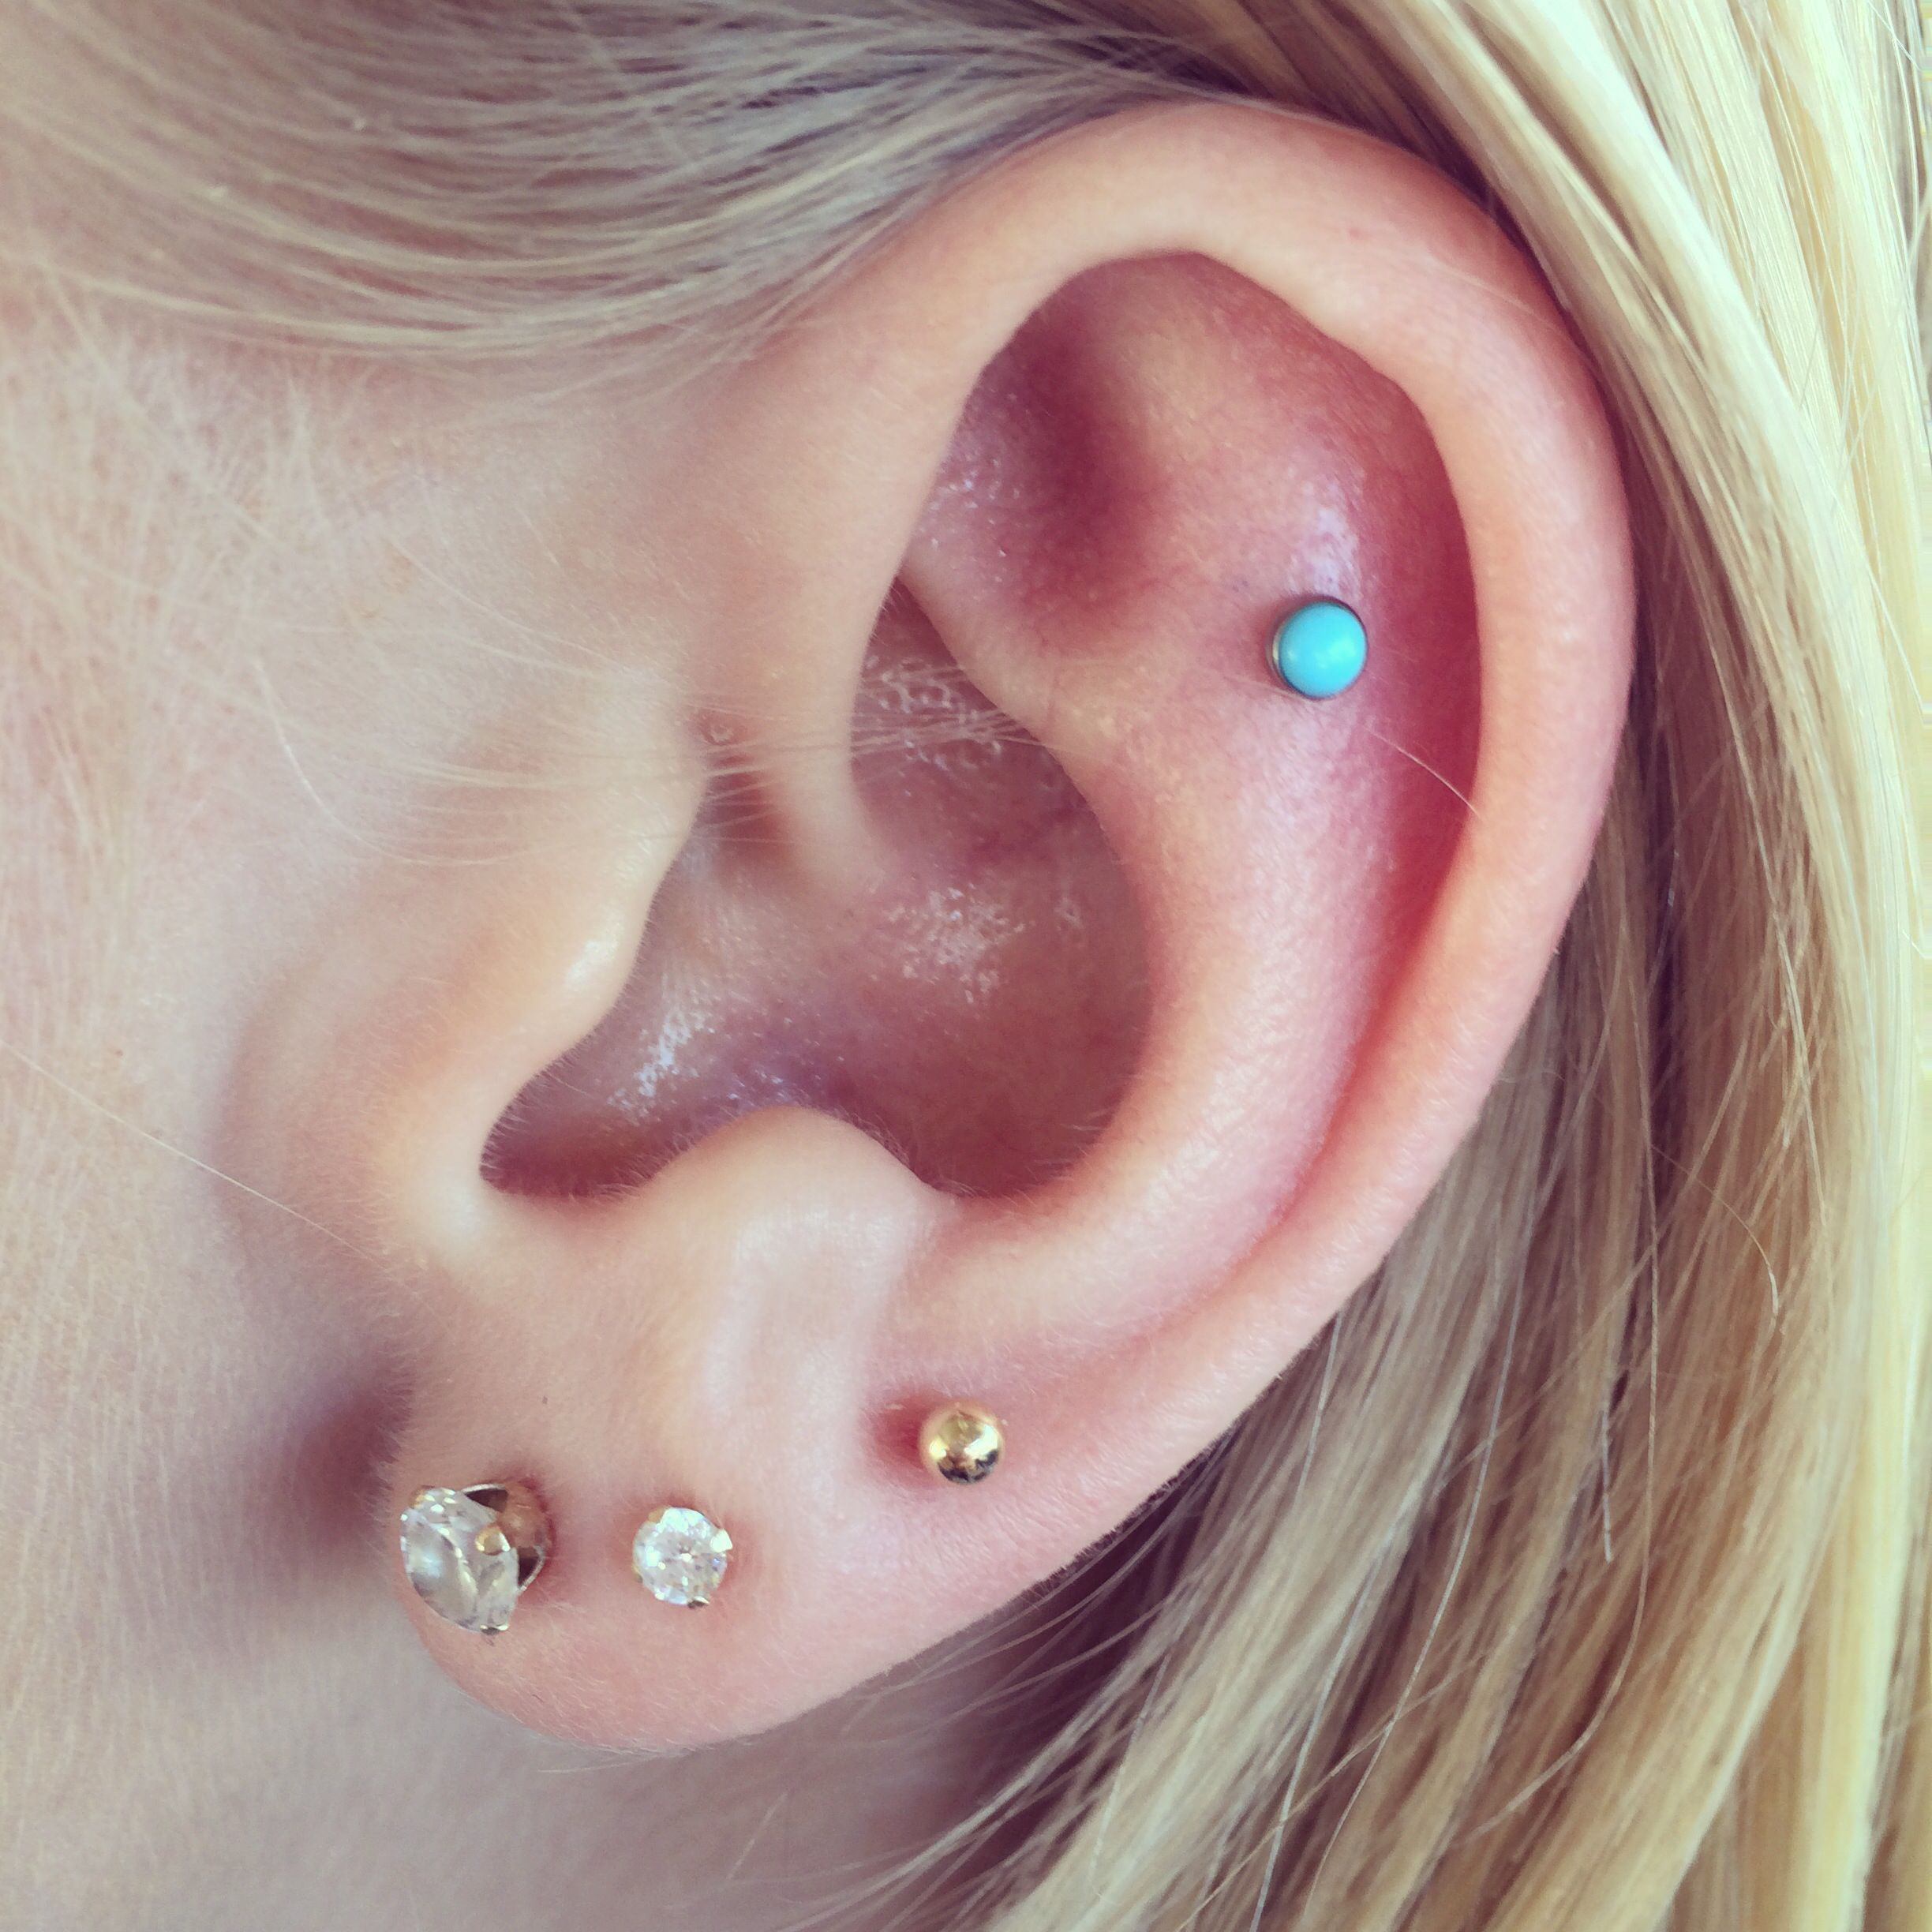 Three Love Piercings And A